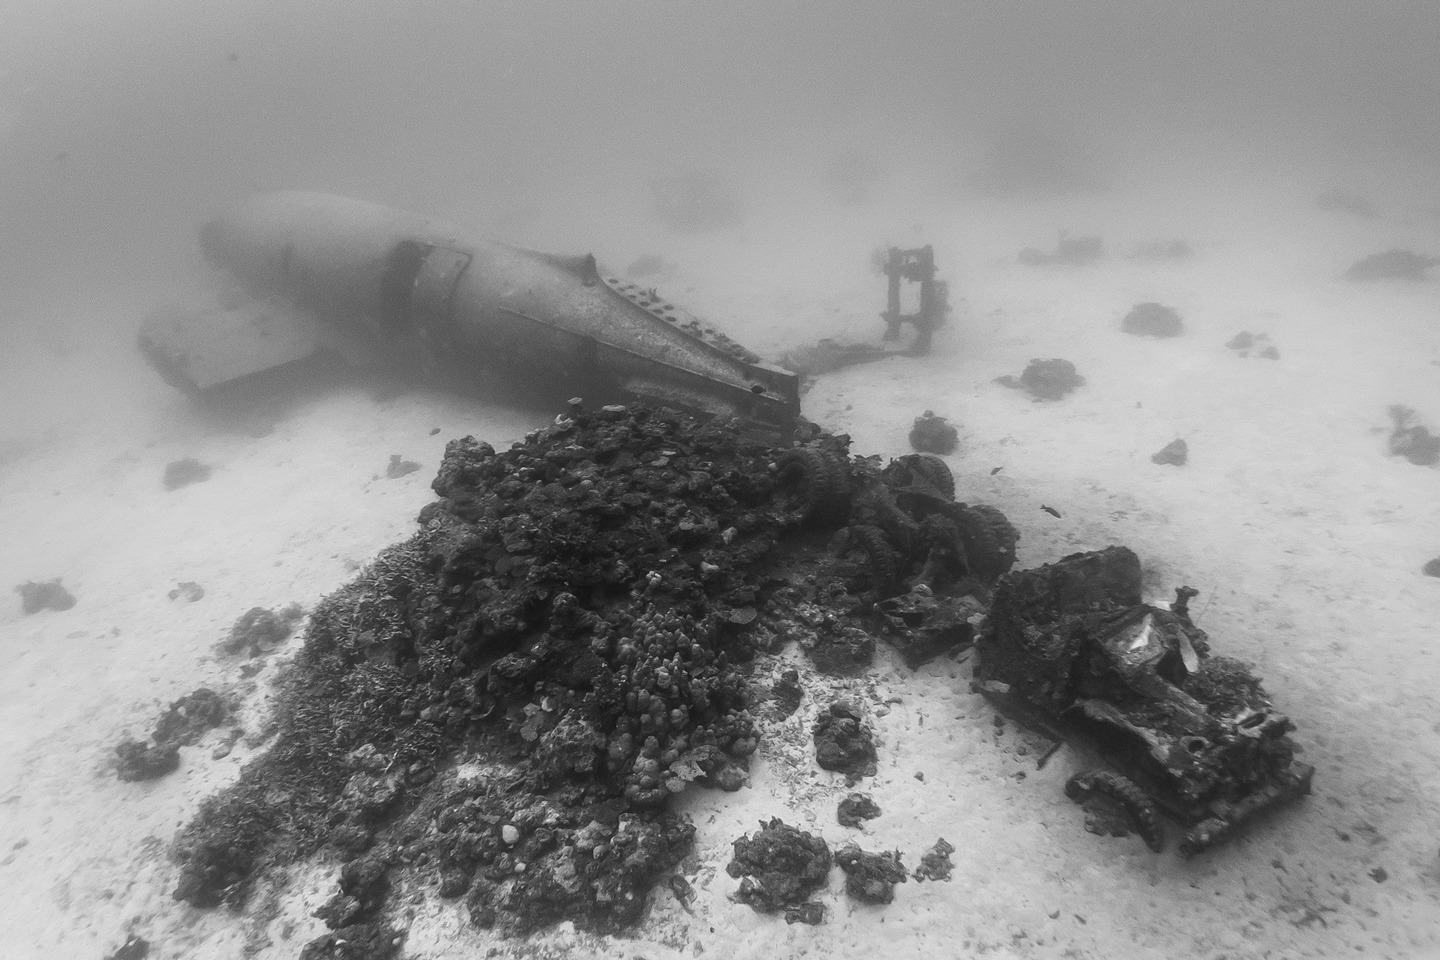 The Pacific Ocean Bed Is A Graveyard For World War II Planes dsc 4598